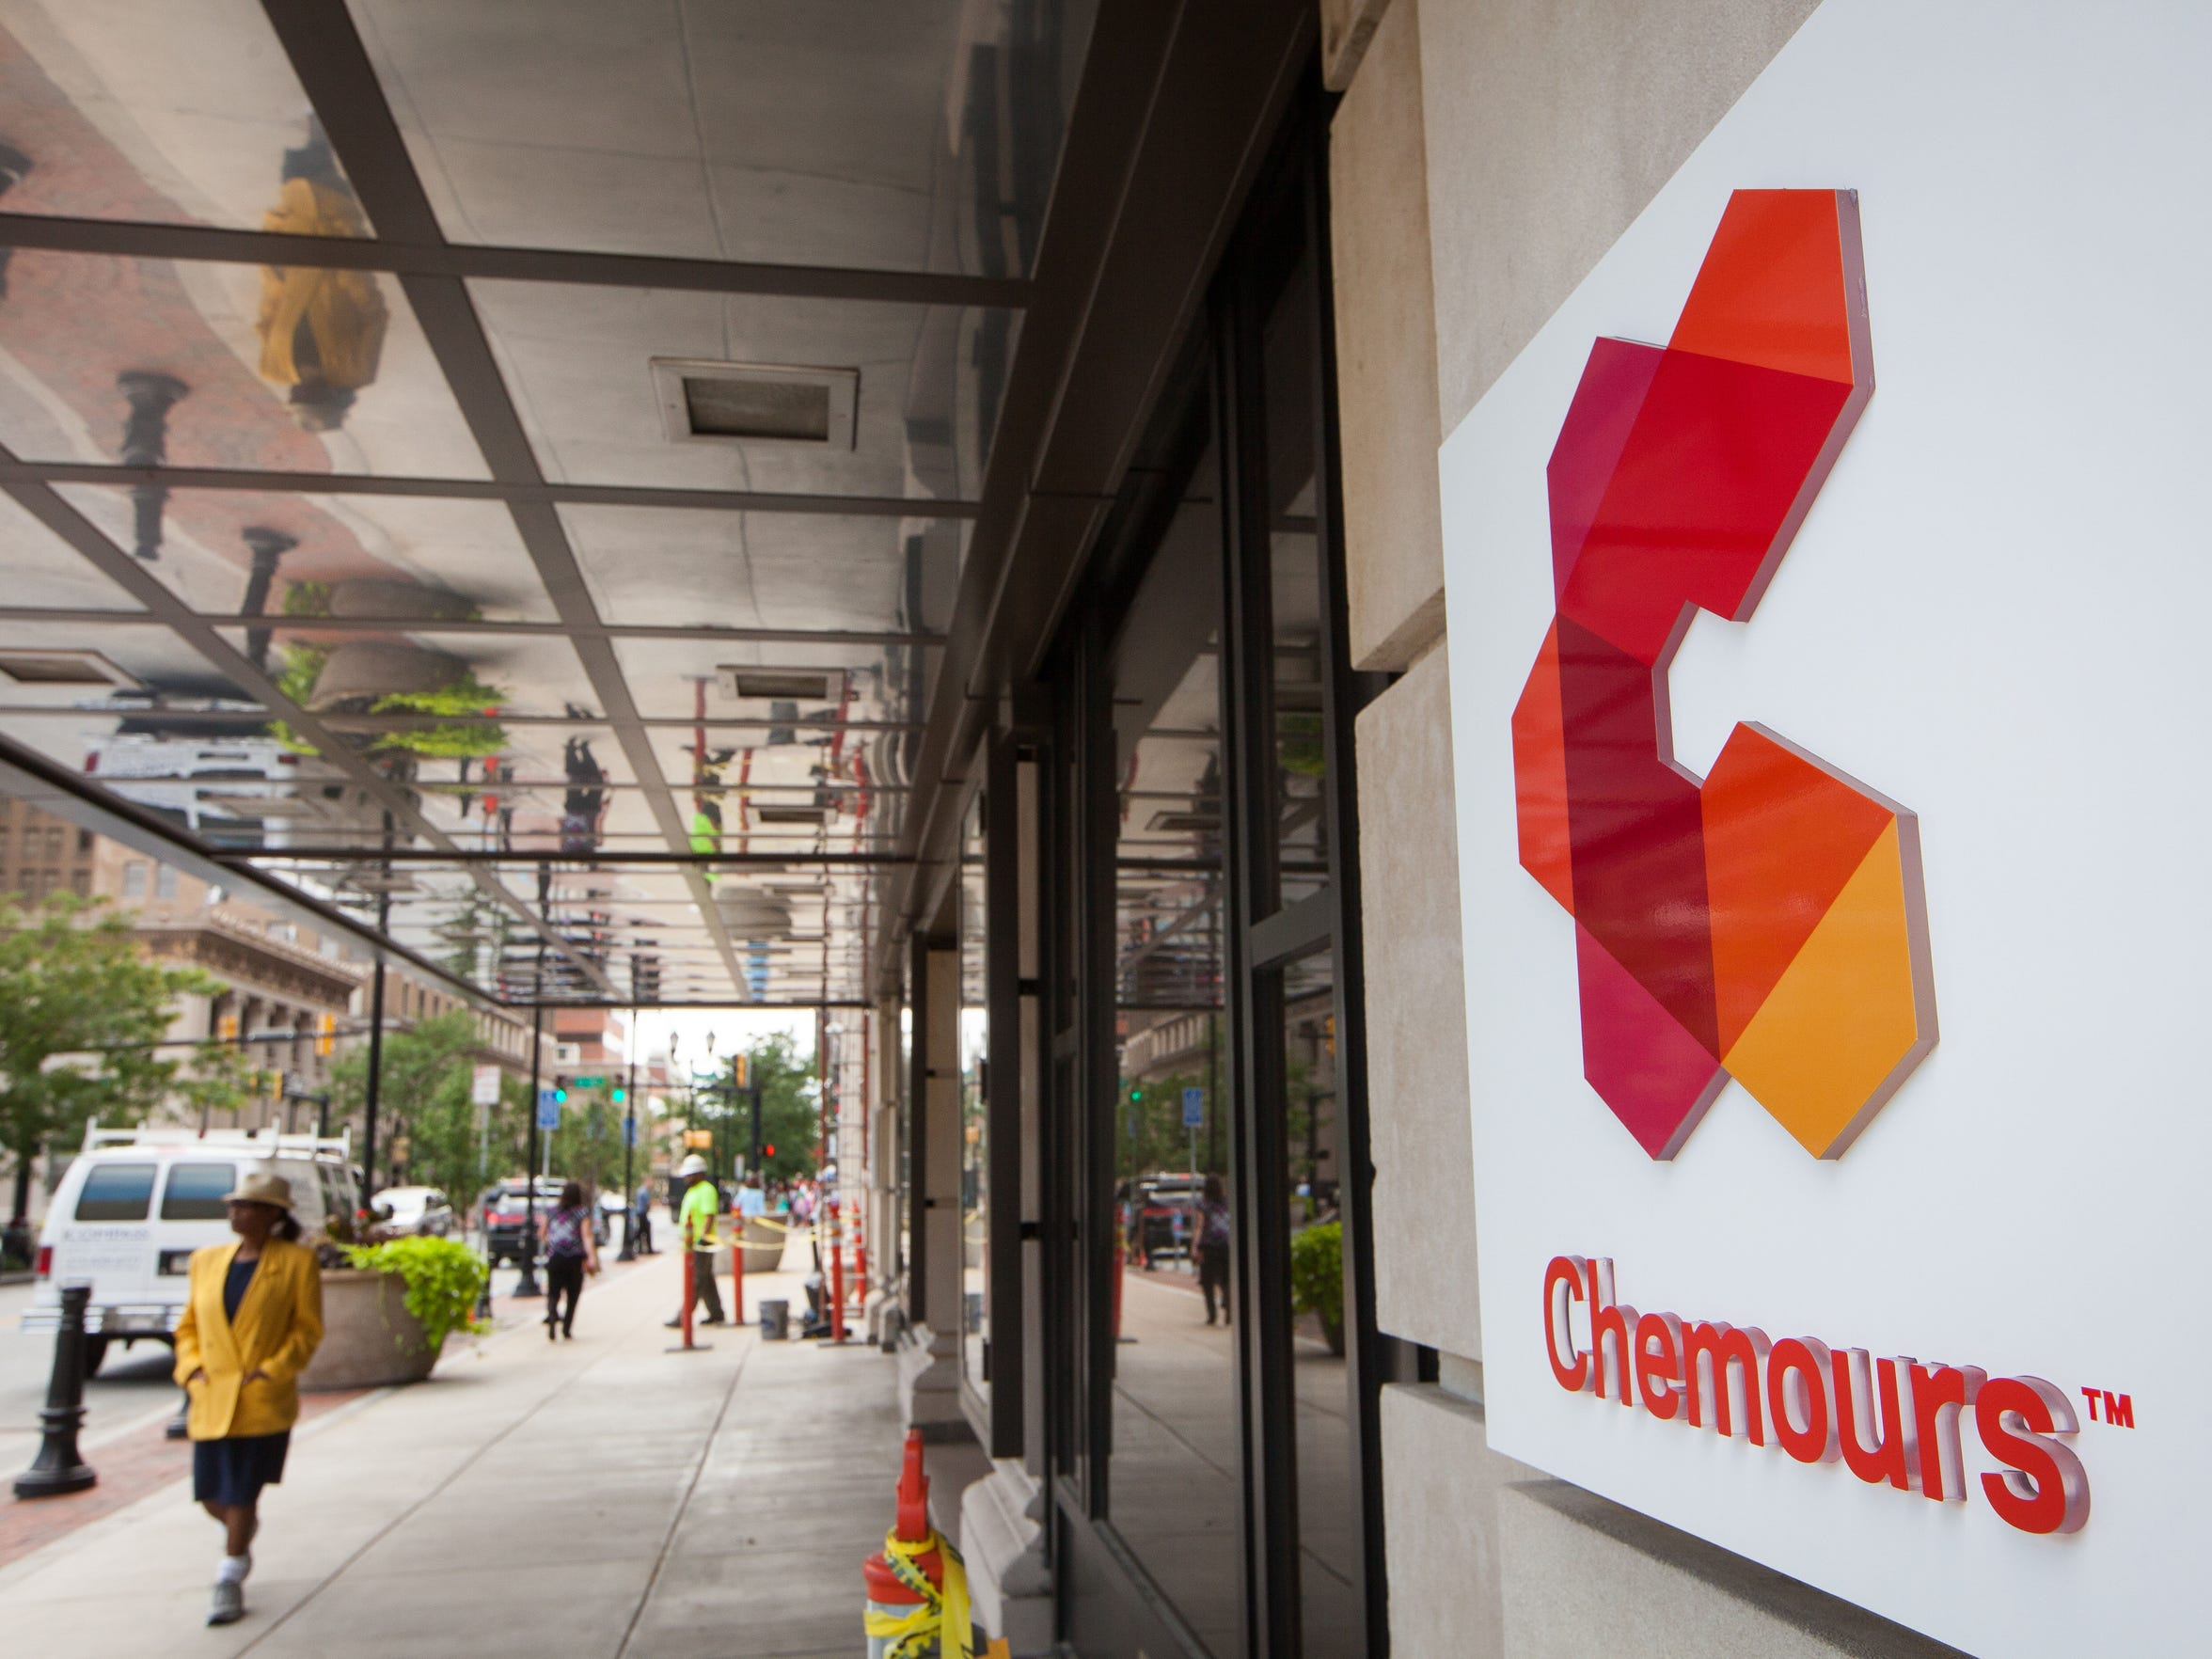 Wilmington-based Chemours earned $51 million in the first quarter of 2016. It was the company's first profitable quarter since separating from DuPont last year.